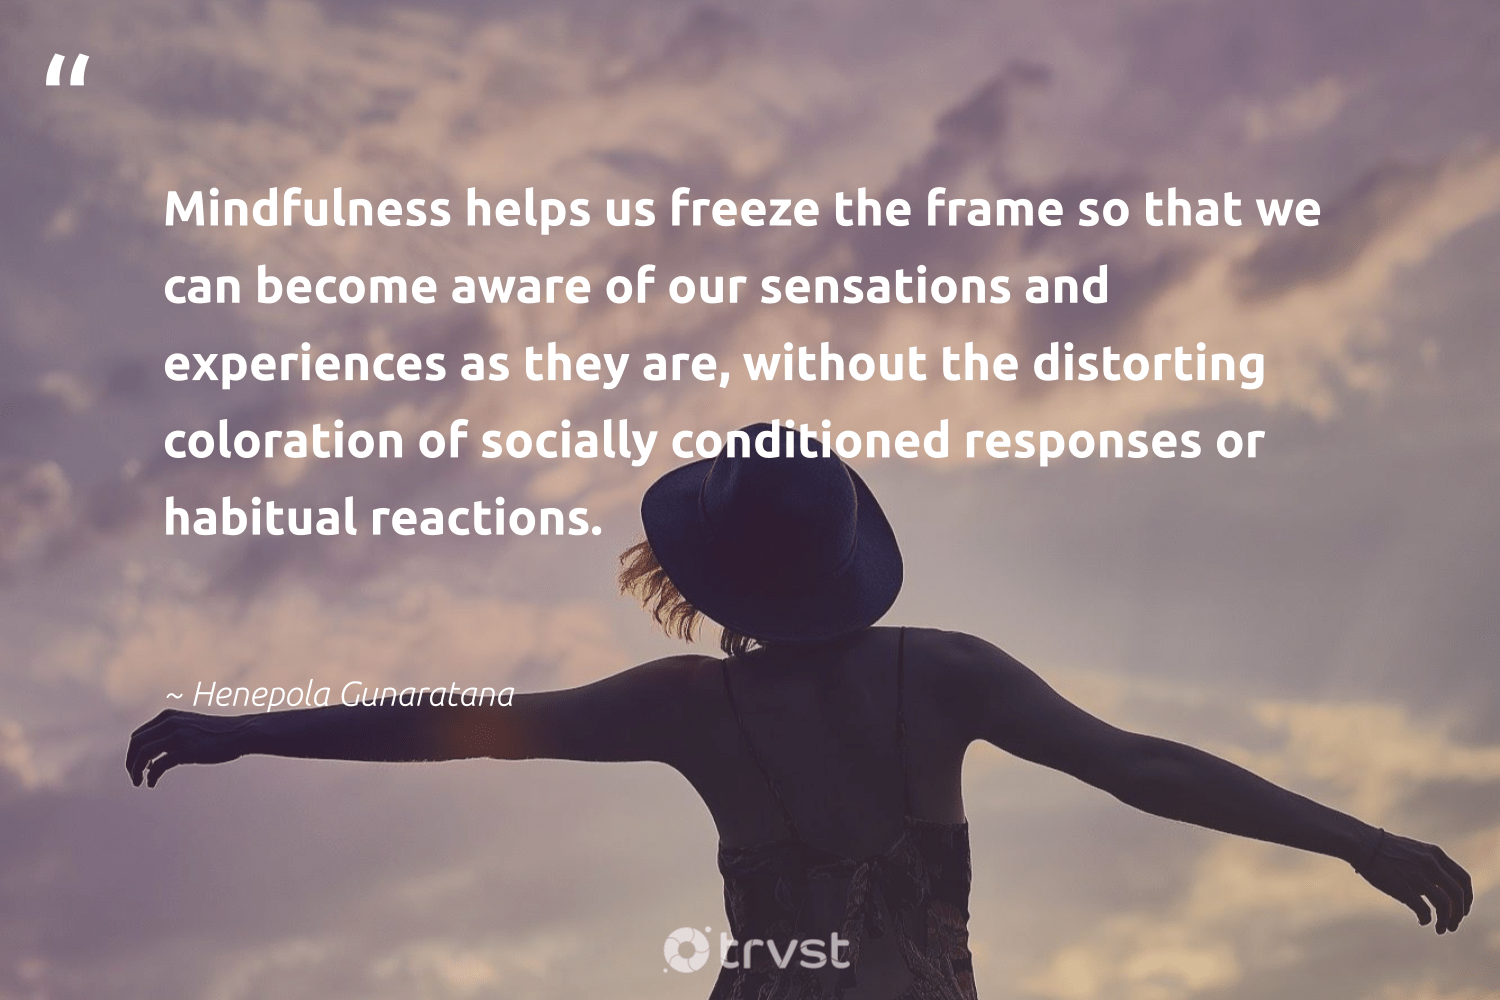 """""""Mindfulness helps us freeze the frame so that we can become aware of our sensations and experiences as they are, without the distorting coloration of socially conditioned responses or habitual reactions.""""  - Henepola Gunaratana #trvst #quotes #mindfulness #meditate #happiness #nevergiveup #takeaction #creativemindset #mindful #togetherwecan #collectiveaction #motivation"""